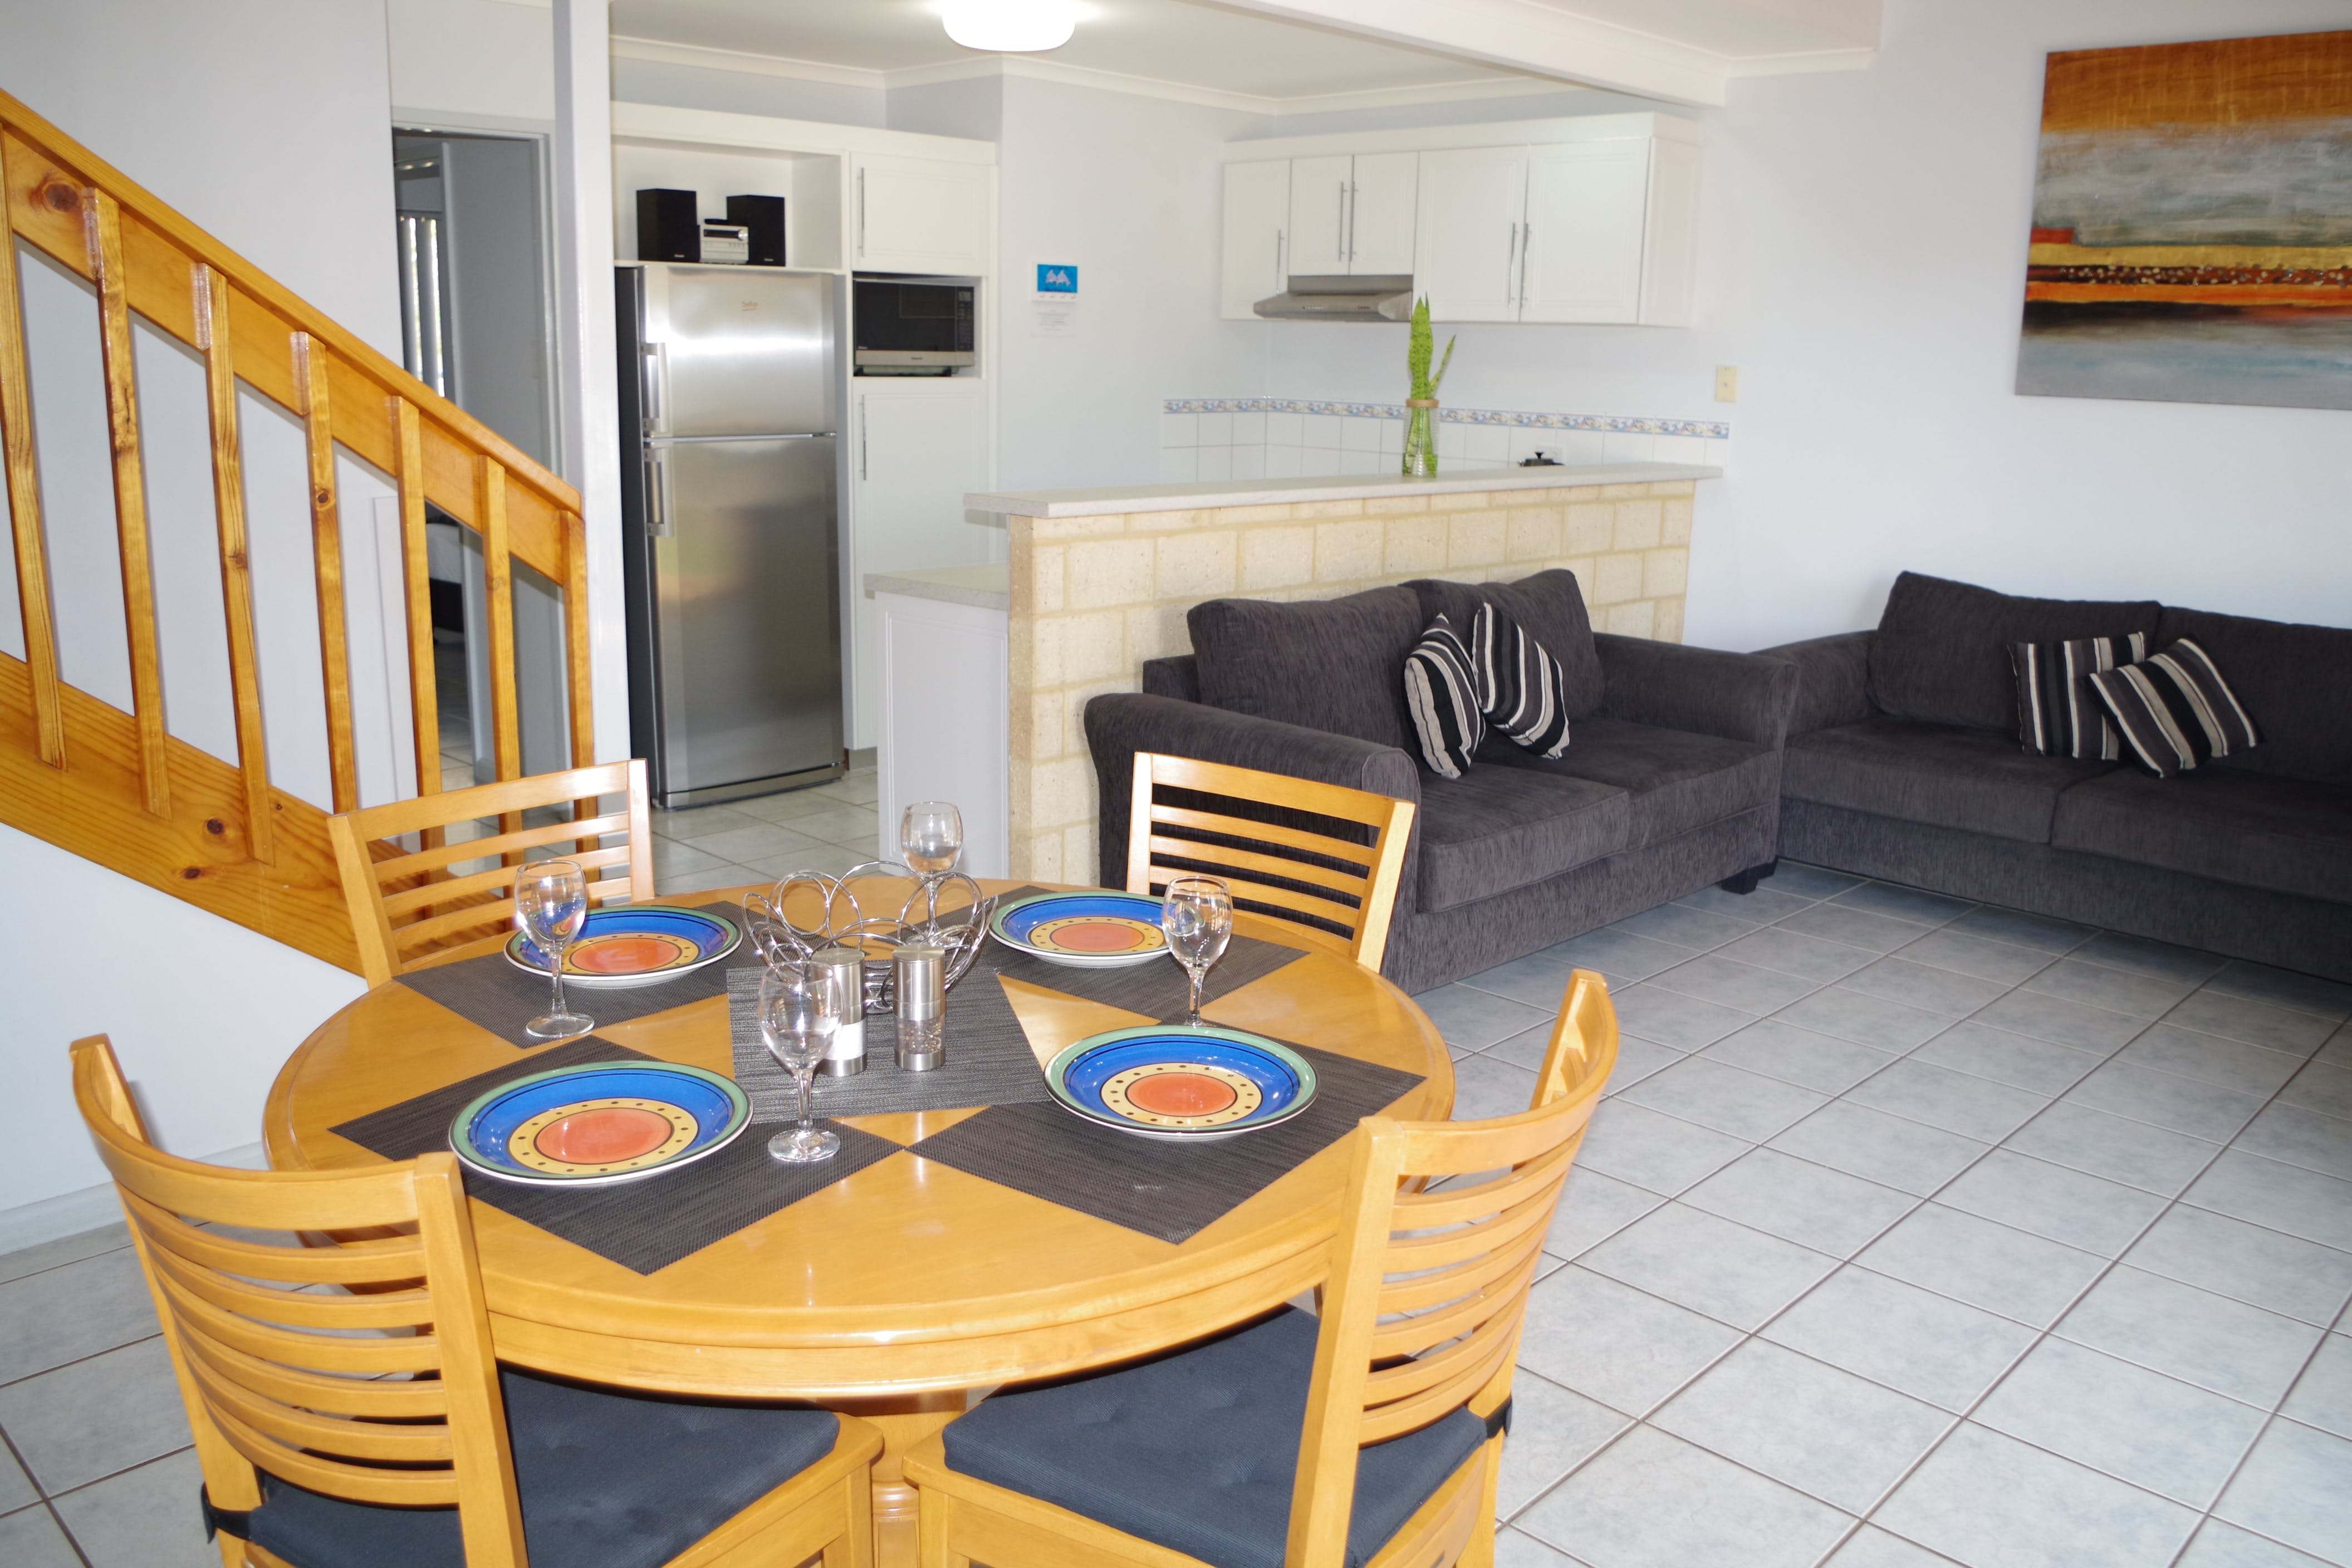 Kalbarri Blue Ocean Villas is your perfect choice before Kalbarri caravan parks in Kalbarri WA.